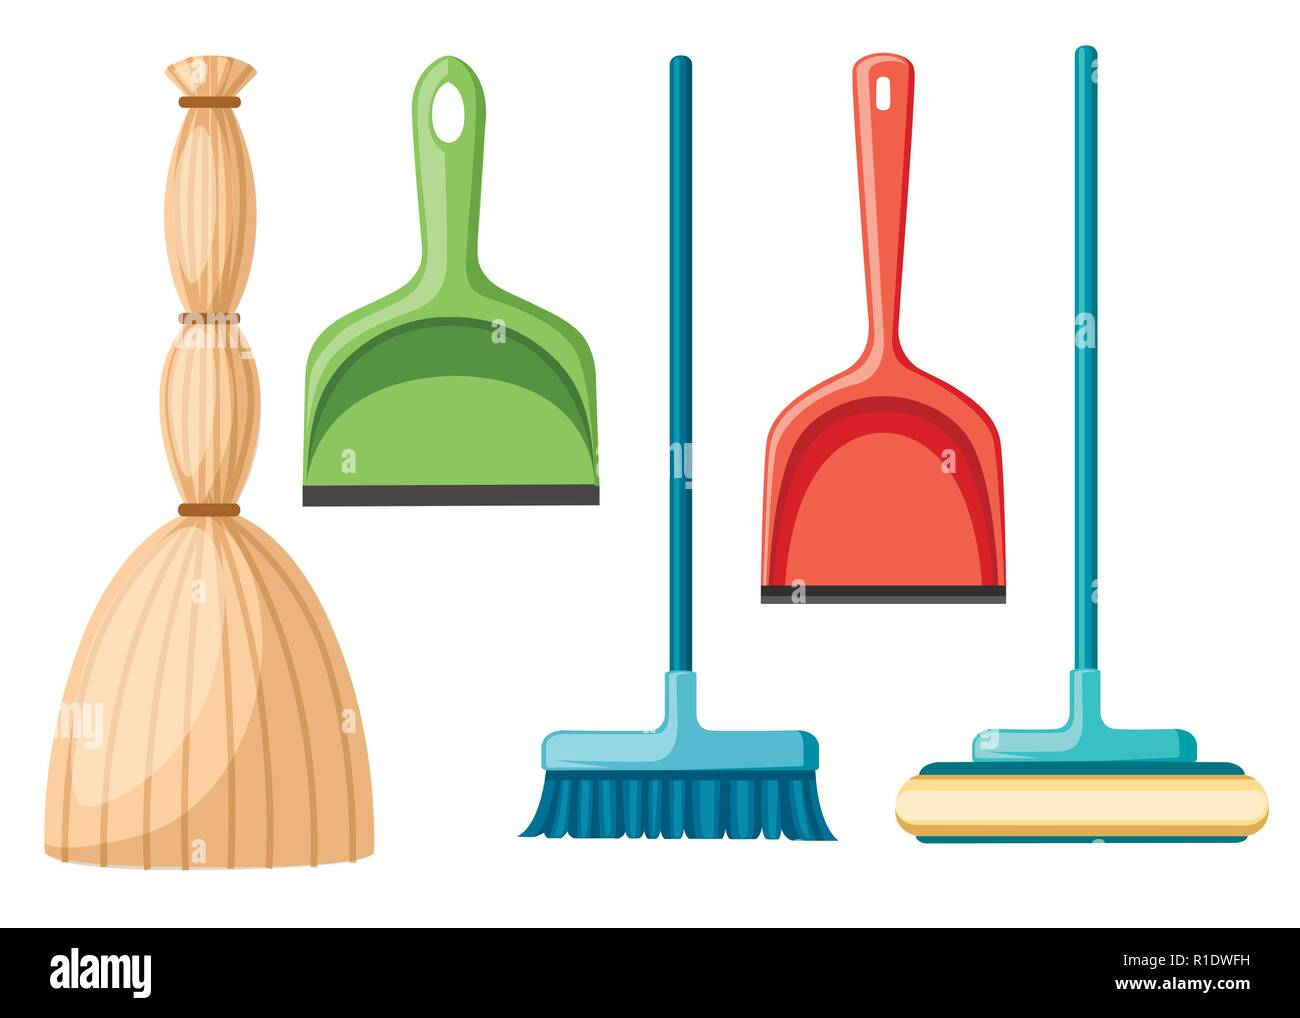 Collection of household cleaning utensil. Broom, mop, scoop. Flat vector illustration isolated on white background. - Stock Vector